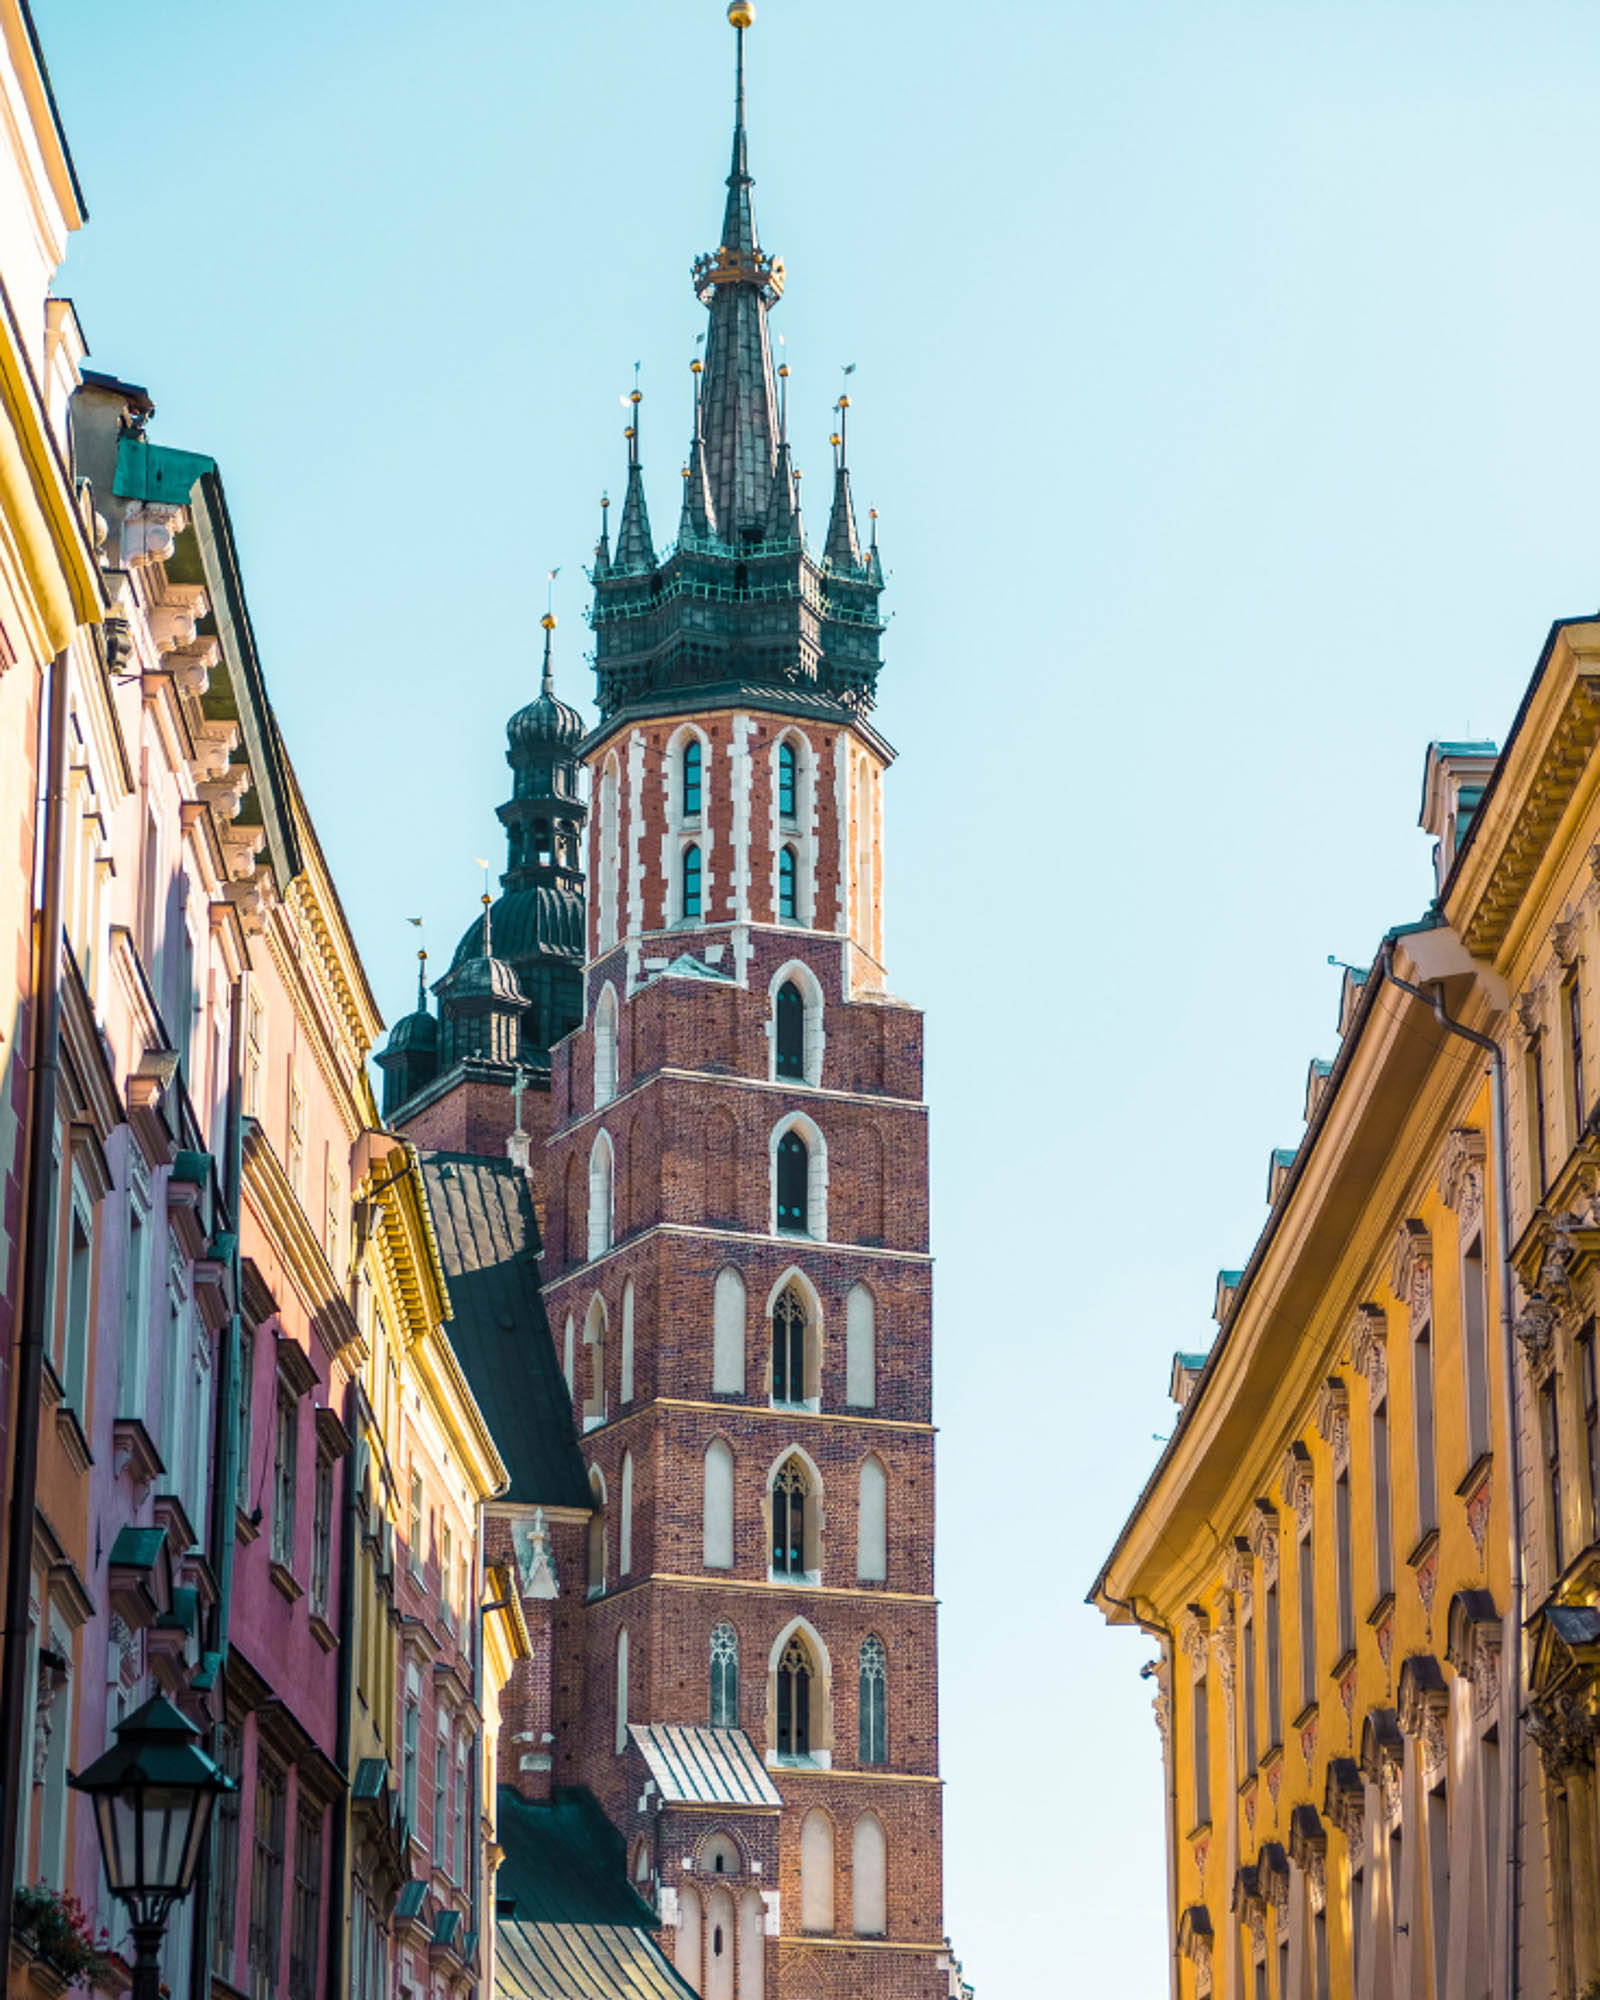 KRAKOW - Krakow gives you a glimpse into one of Poland's most historical and cultural cities.